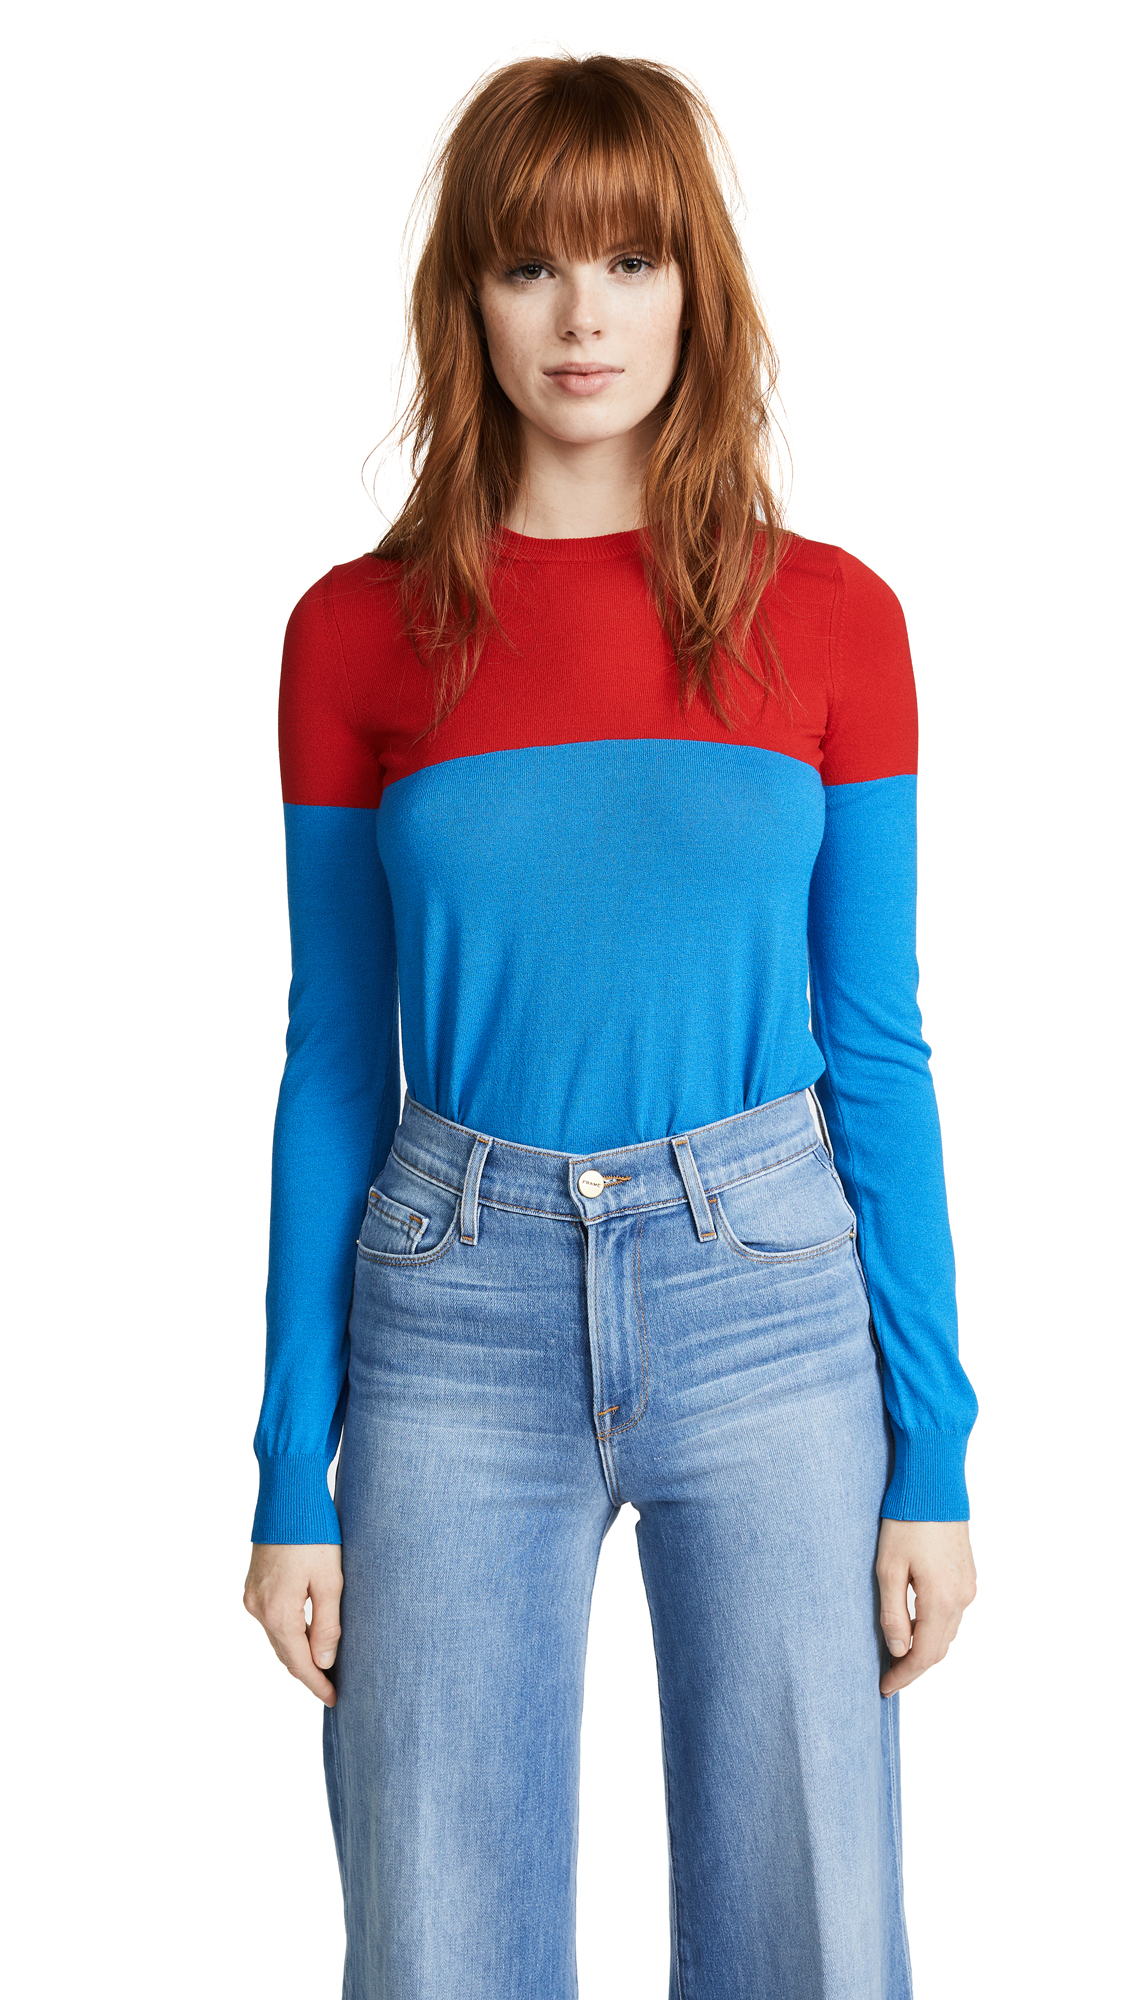 Stella Jean Colorblocked Long Sleeve Top - Red/Blue